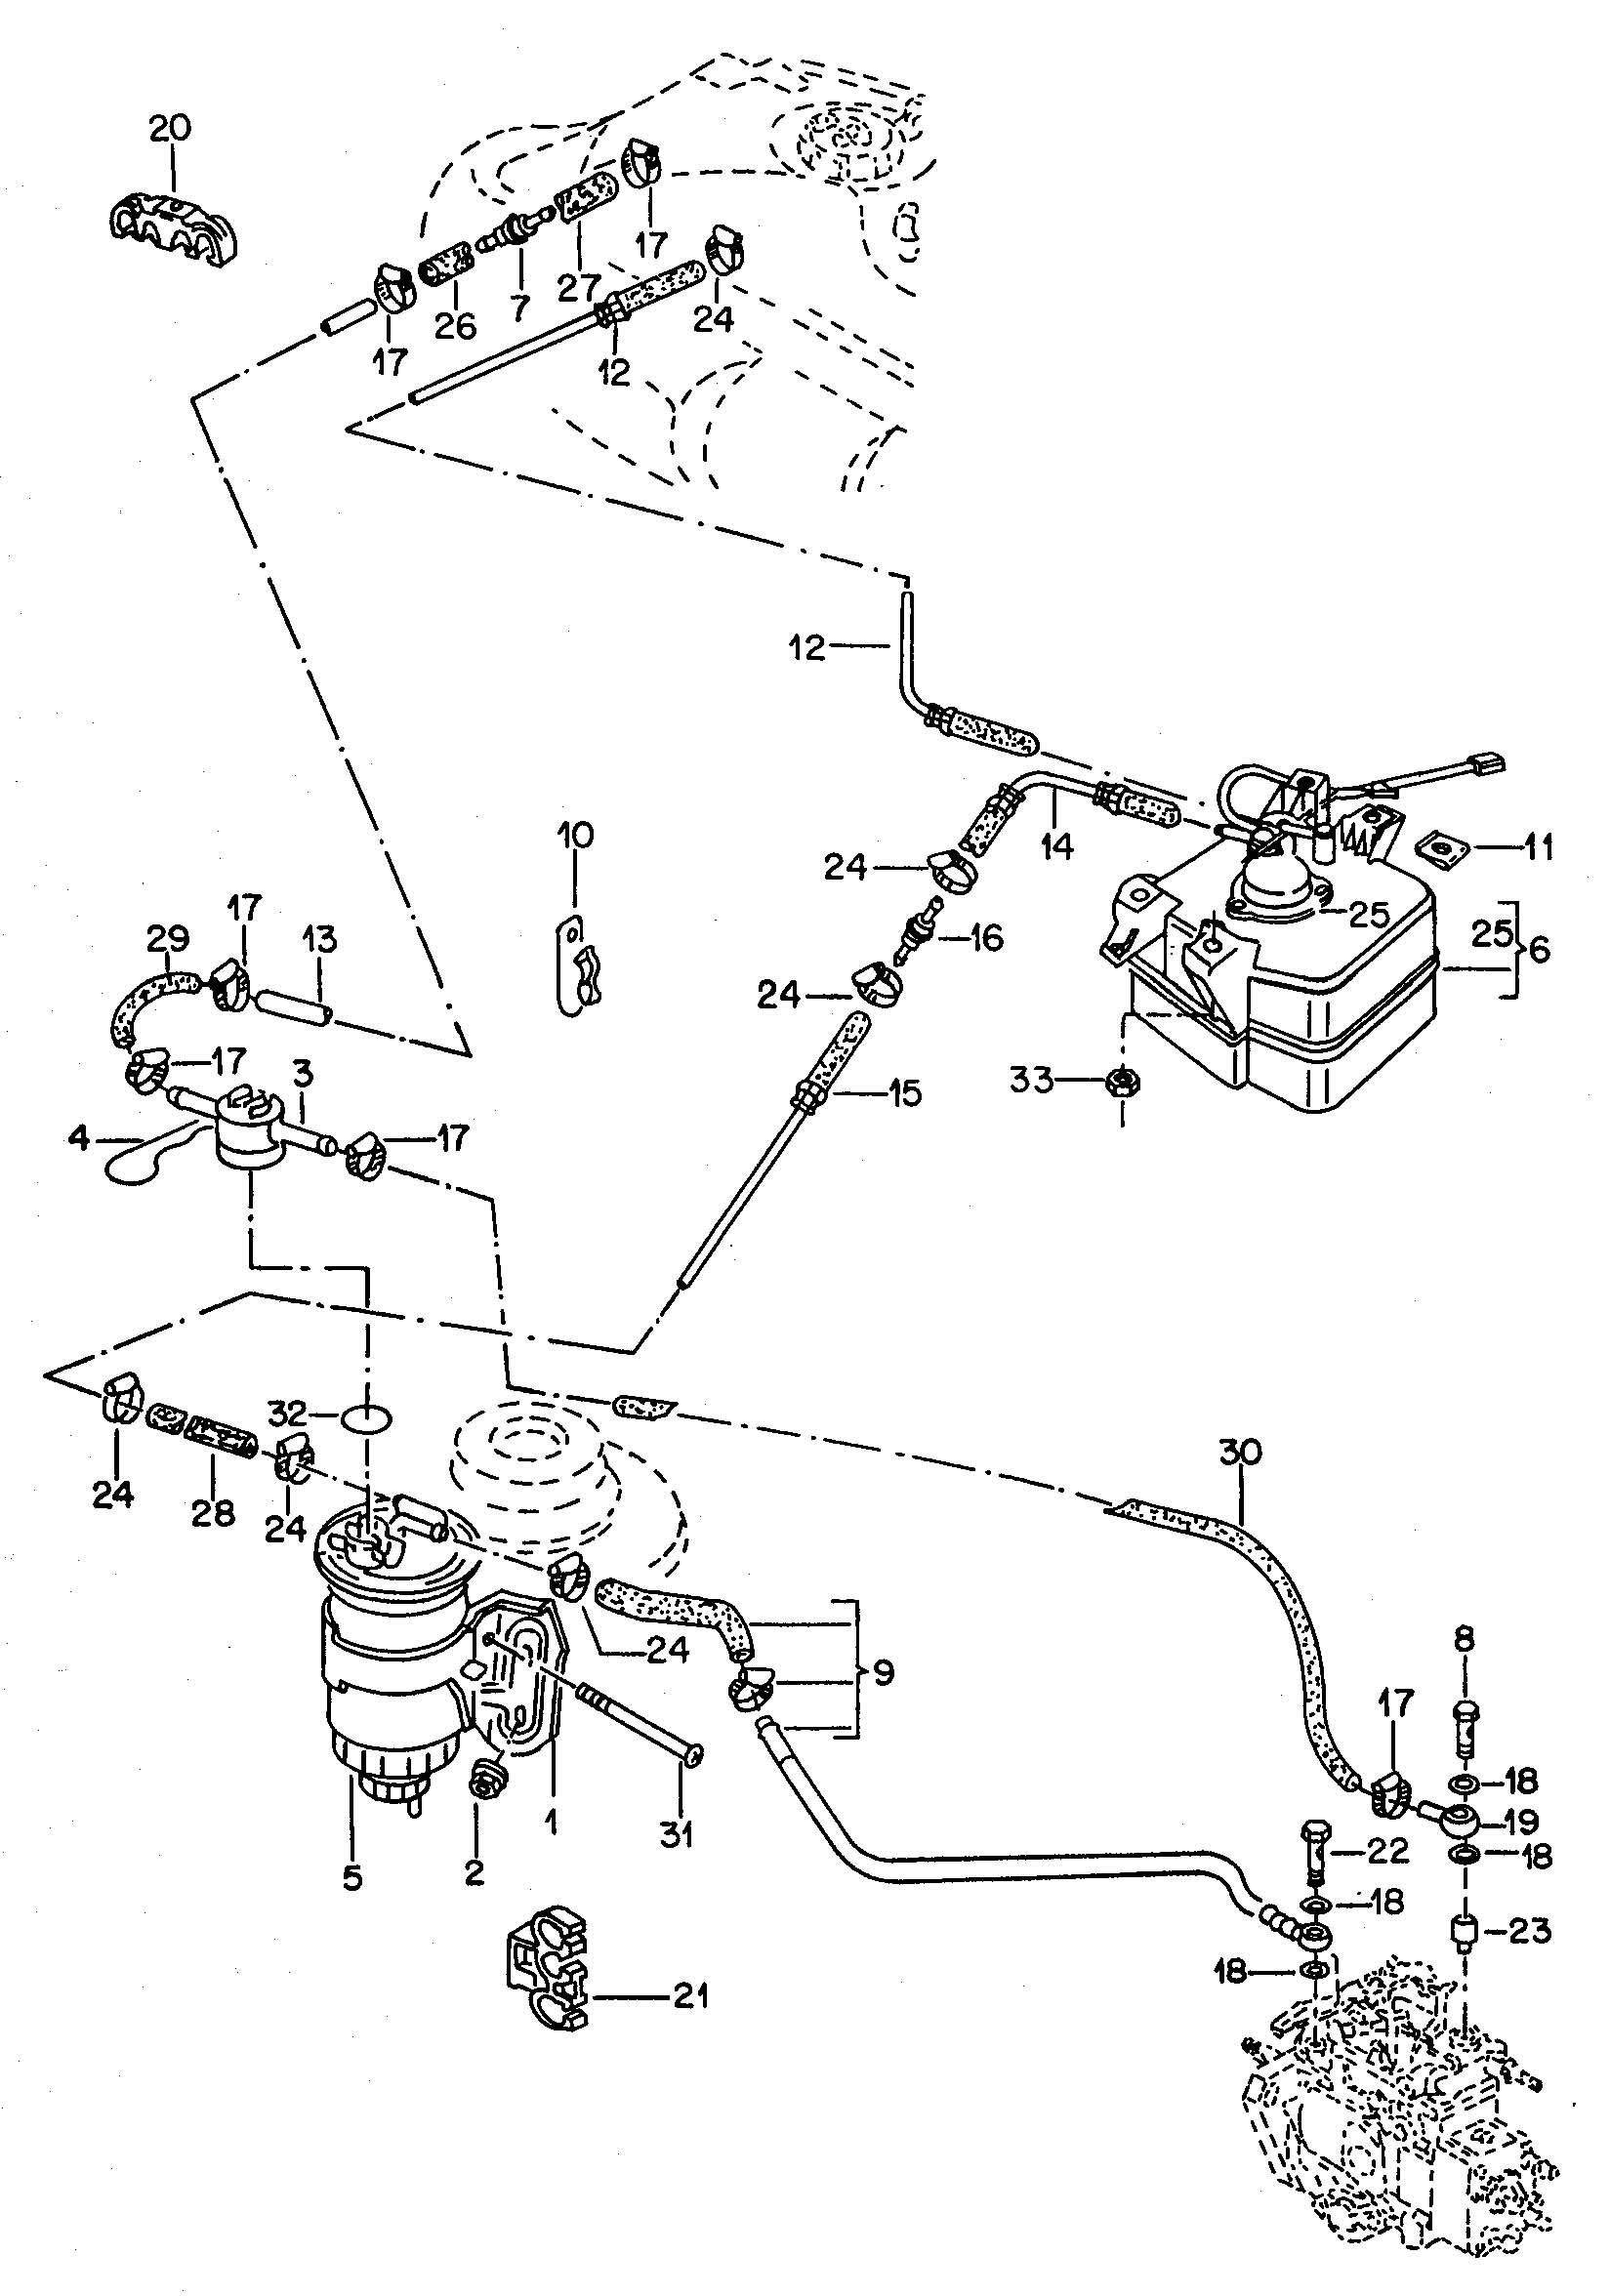 2001 volkswagen beetle parts diagram wiring for outlet upper radiator vw master blogs routan engine coolant free image user dash diagrams 1970